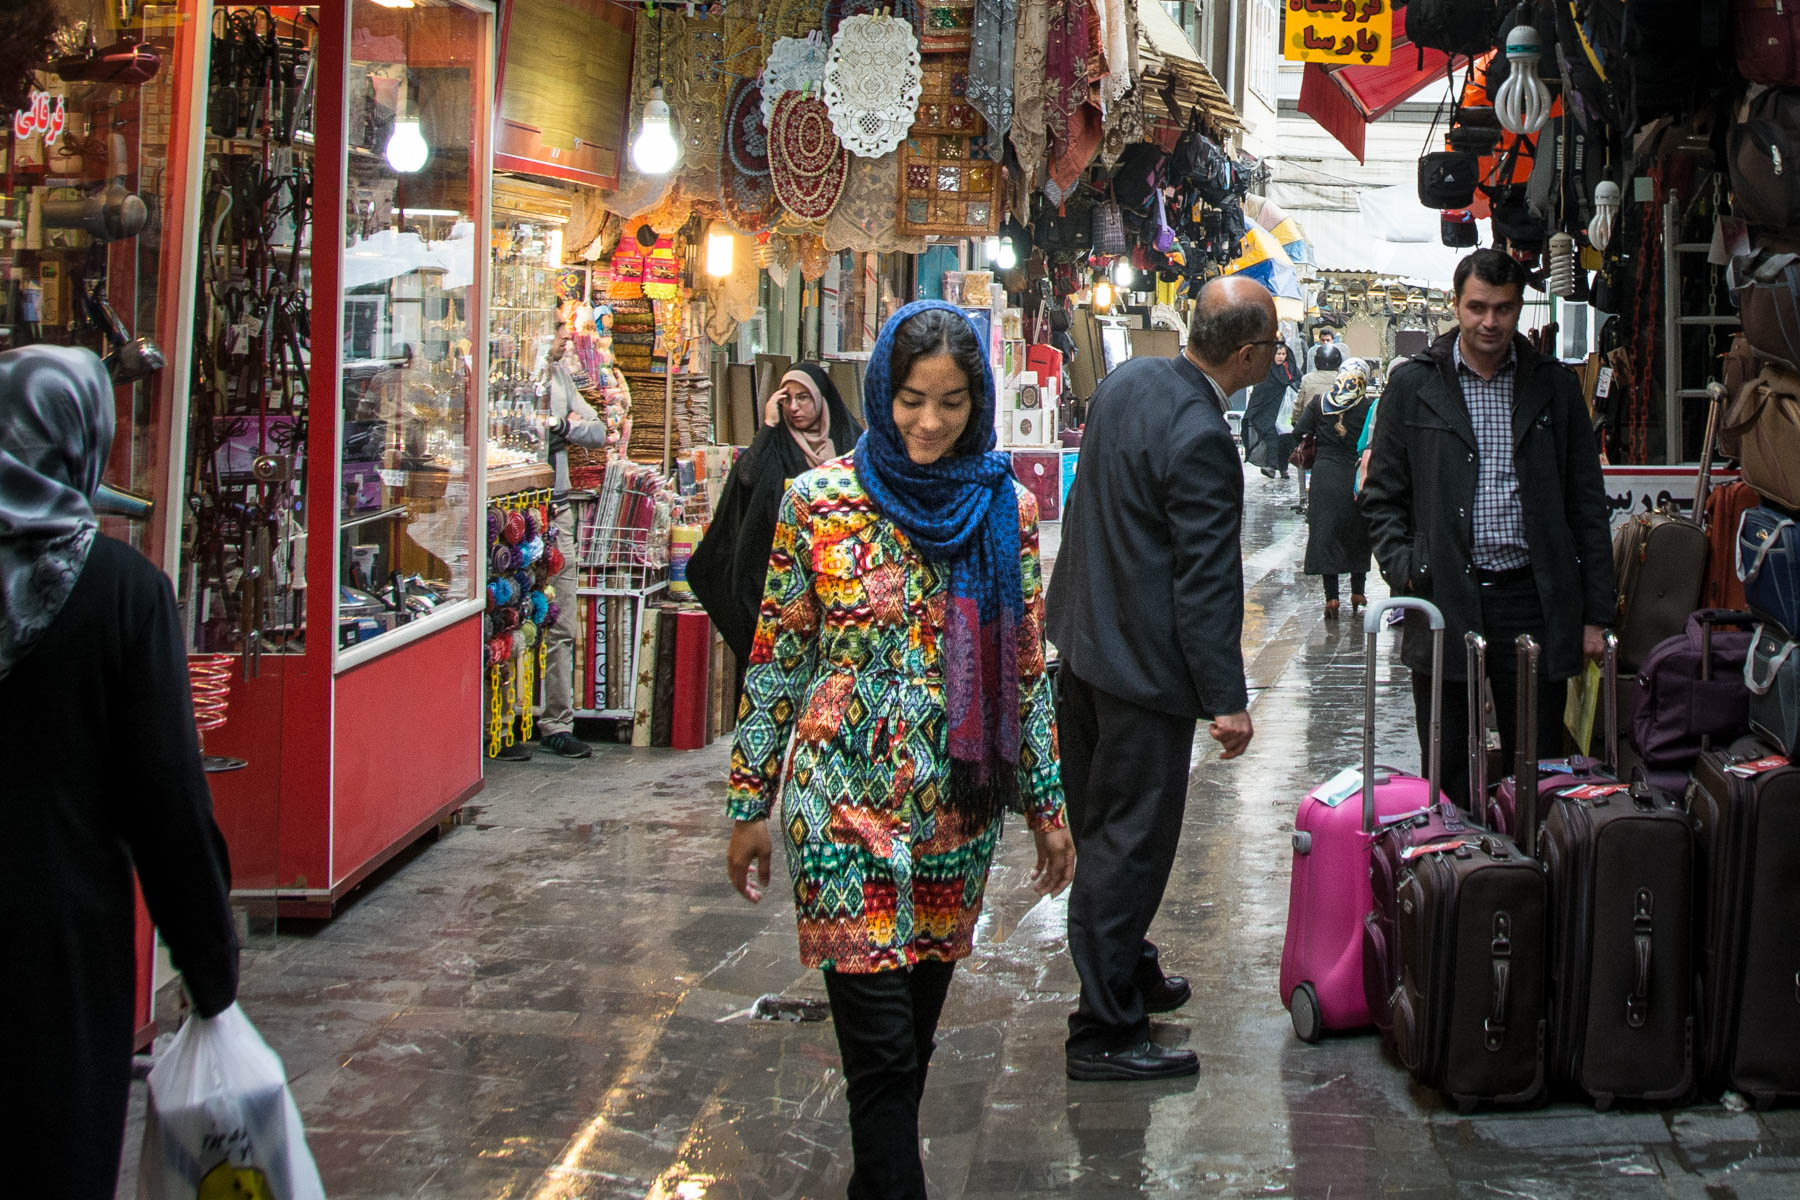 Women's travel tips for Iran: manteau is the most popular form of dress.